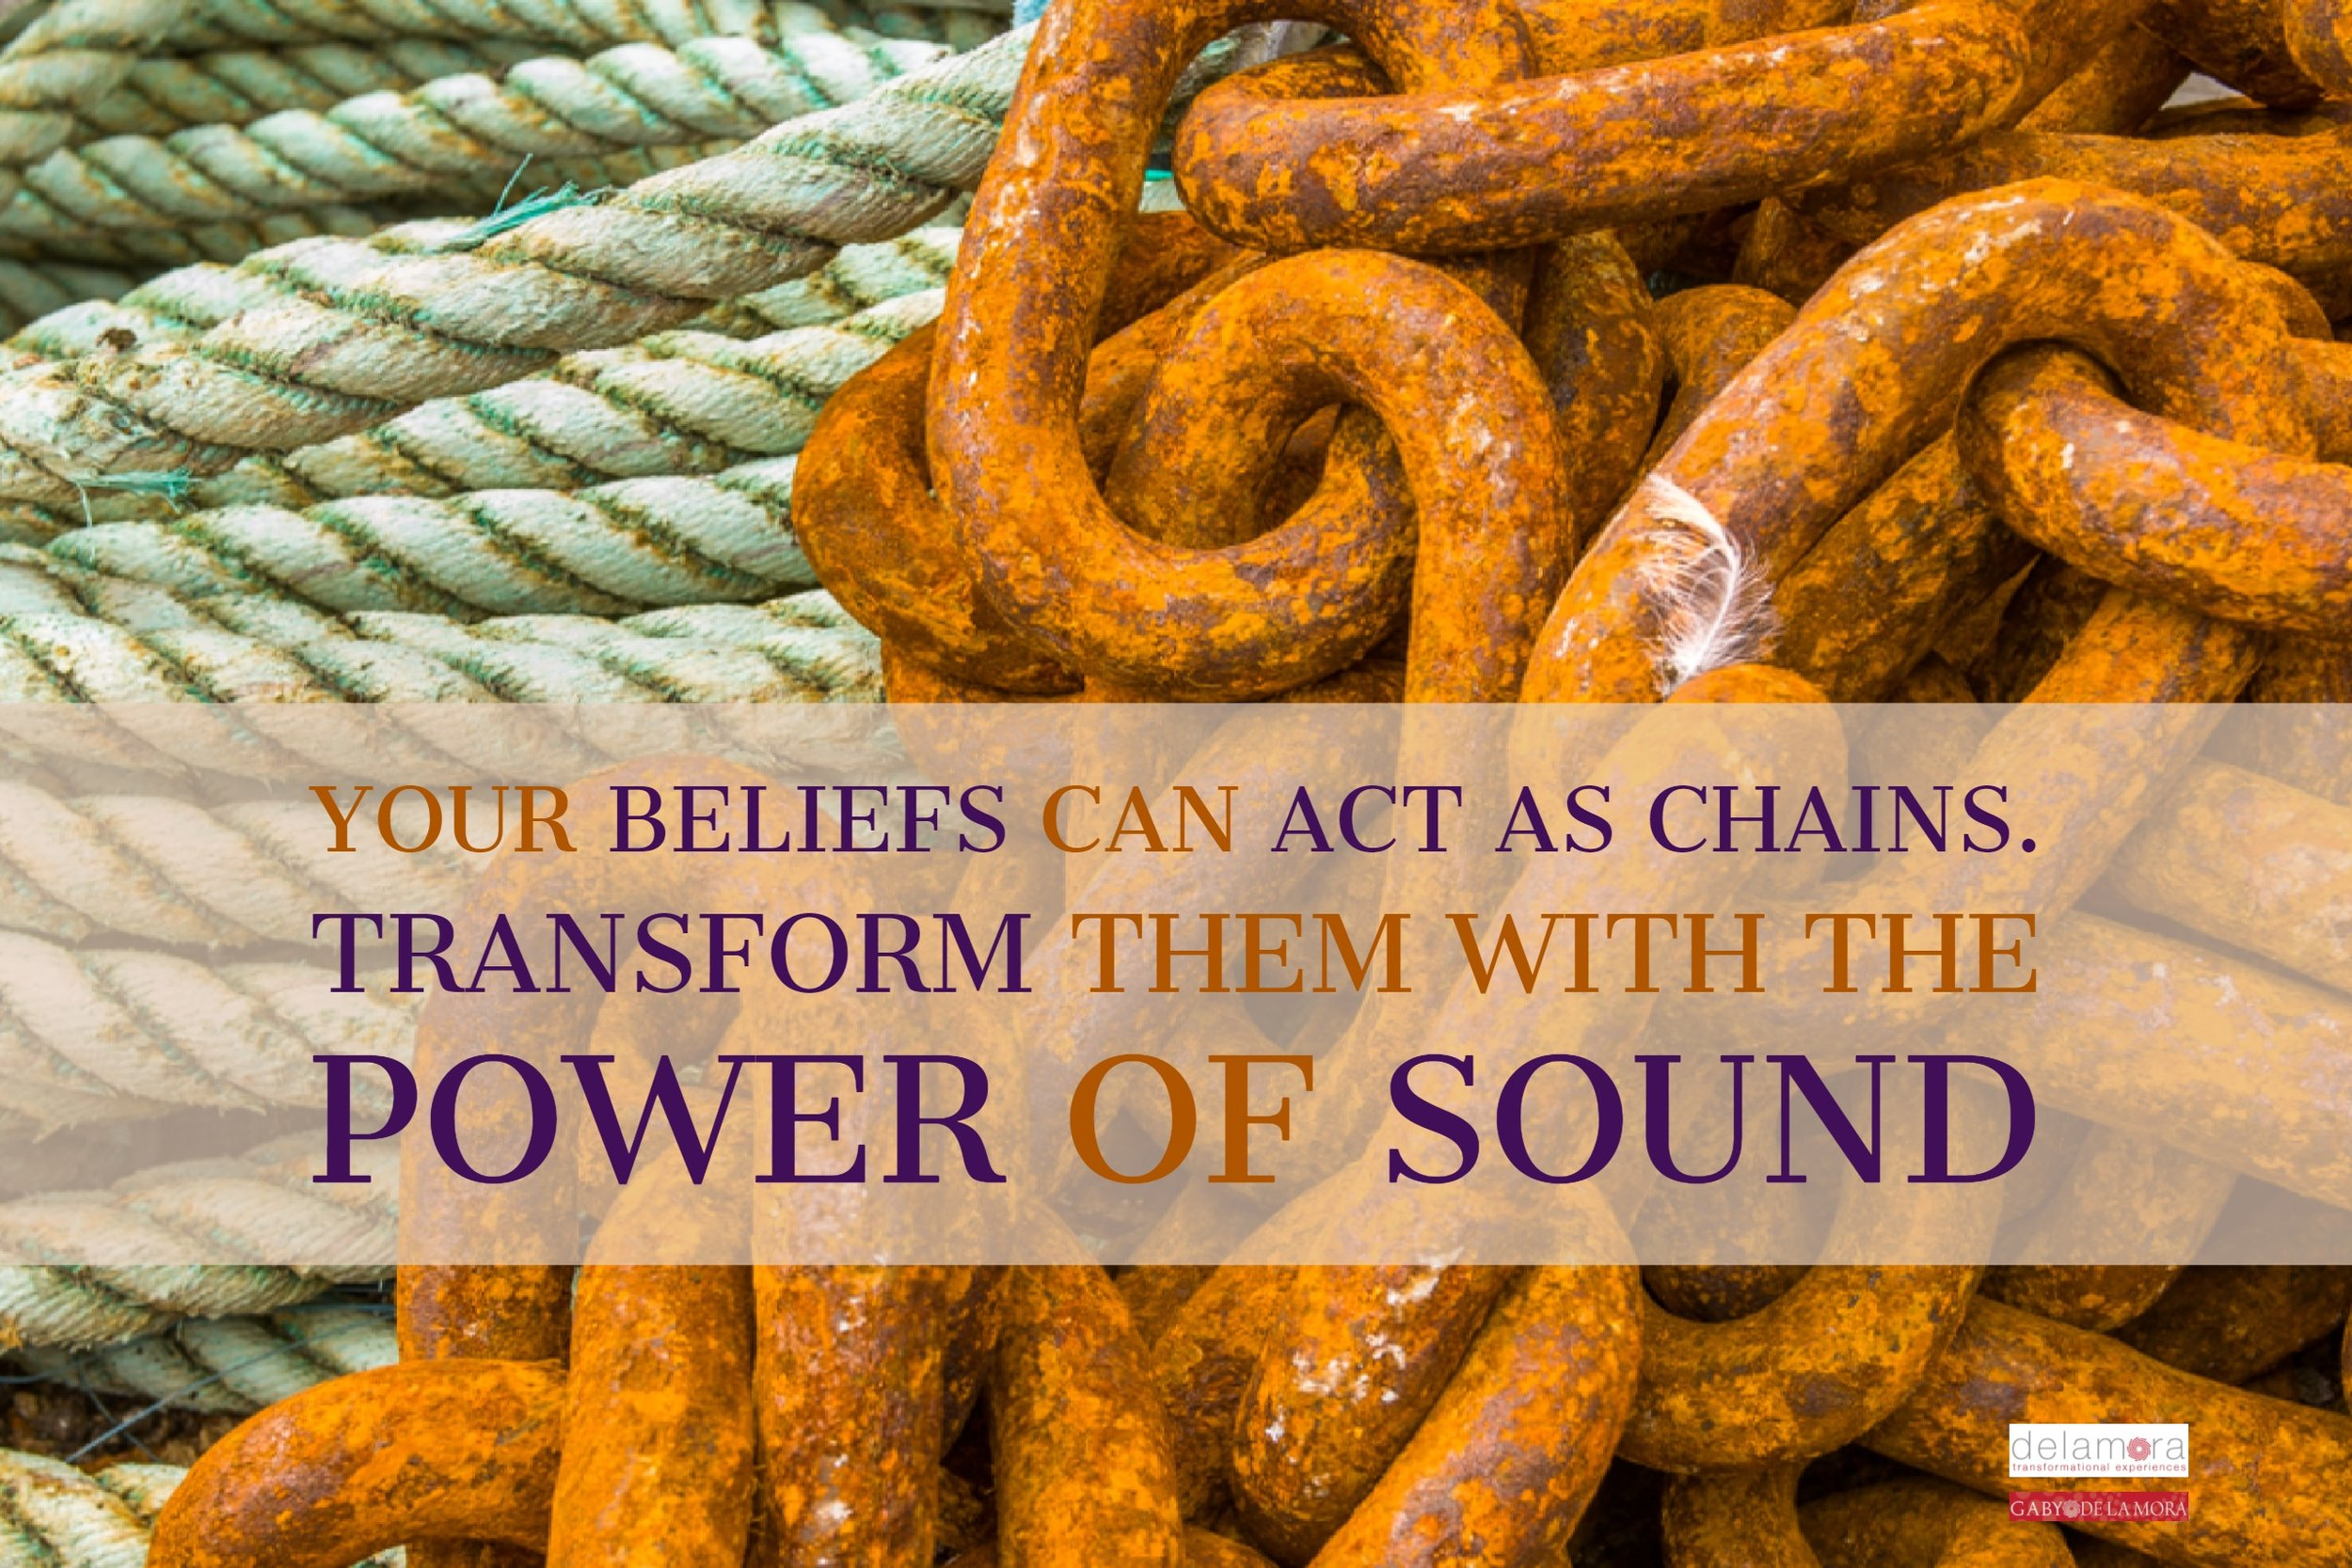 Your beliefs can act as chains